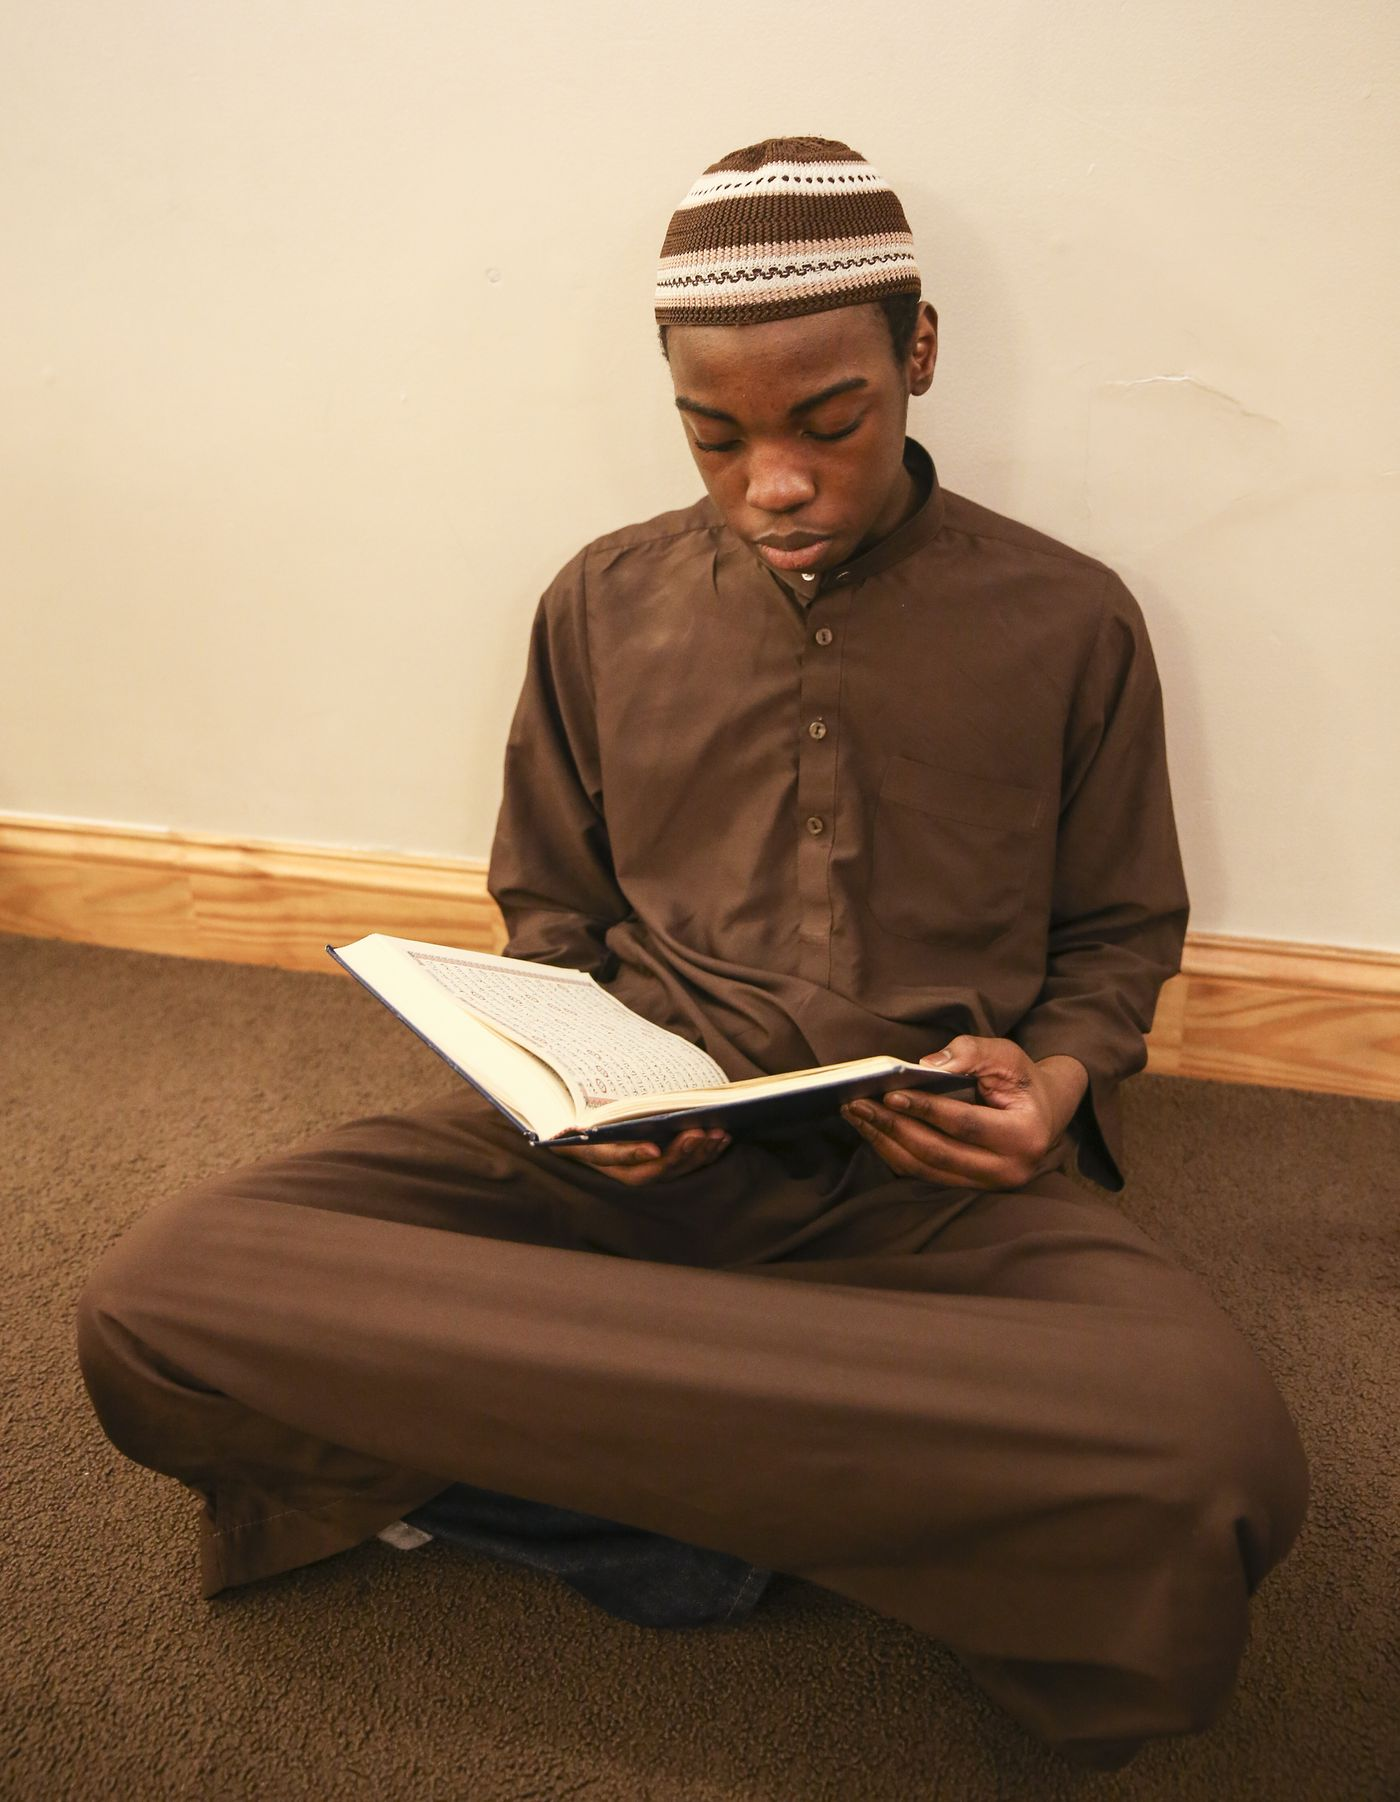 Philly area Muslim students memorize Quran - 6,200 verses